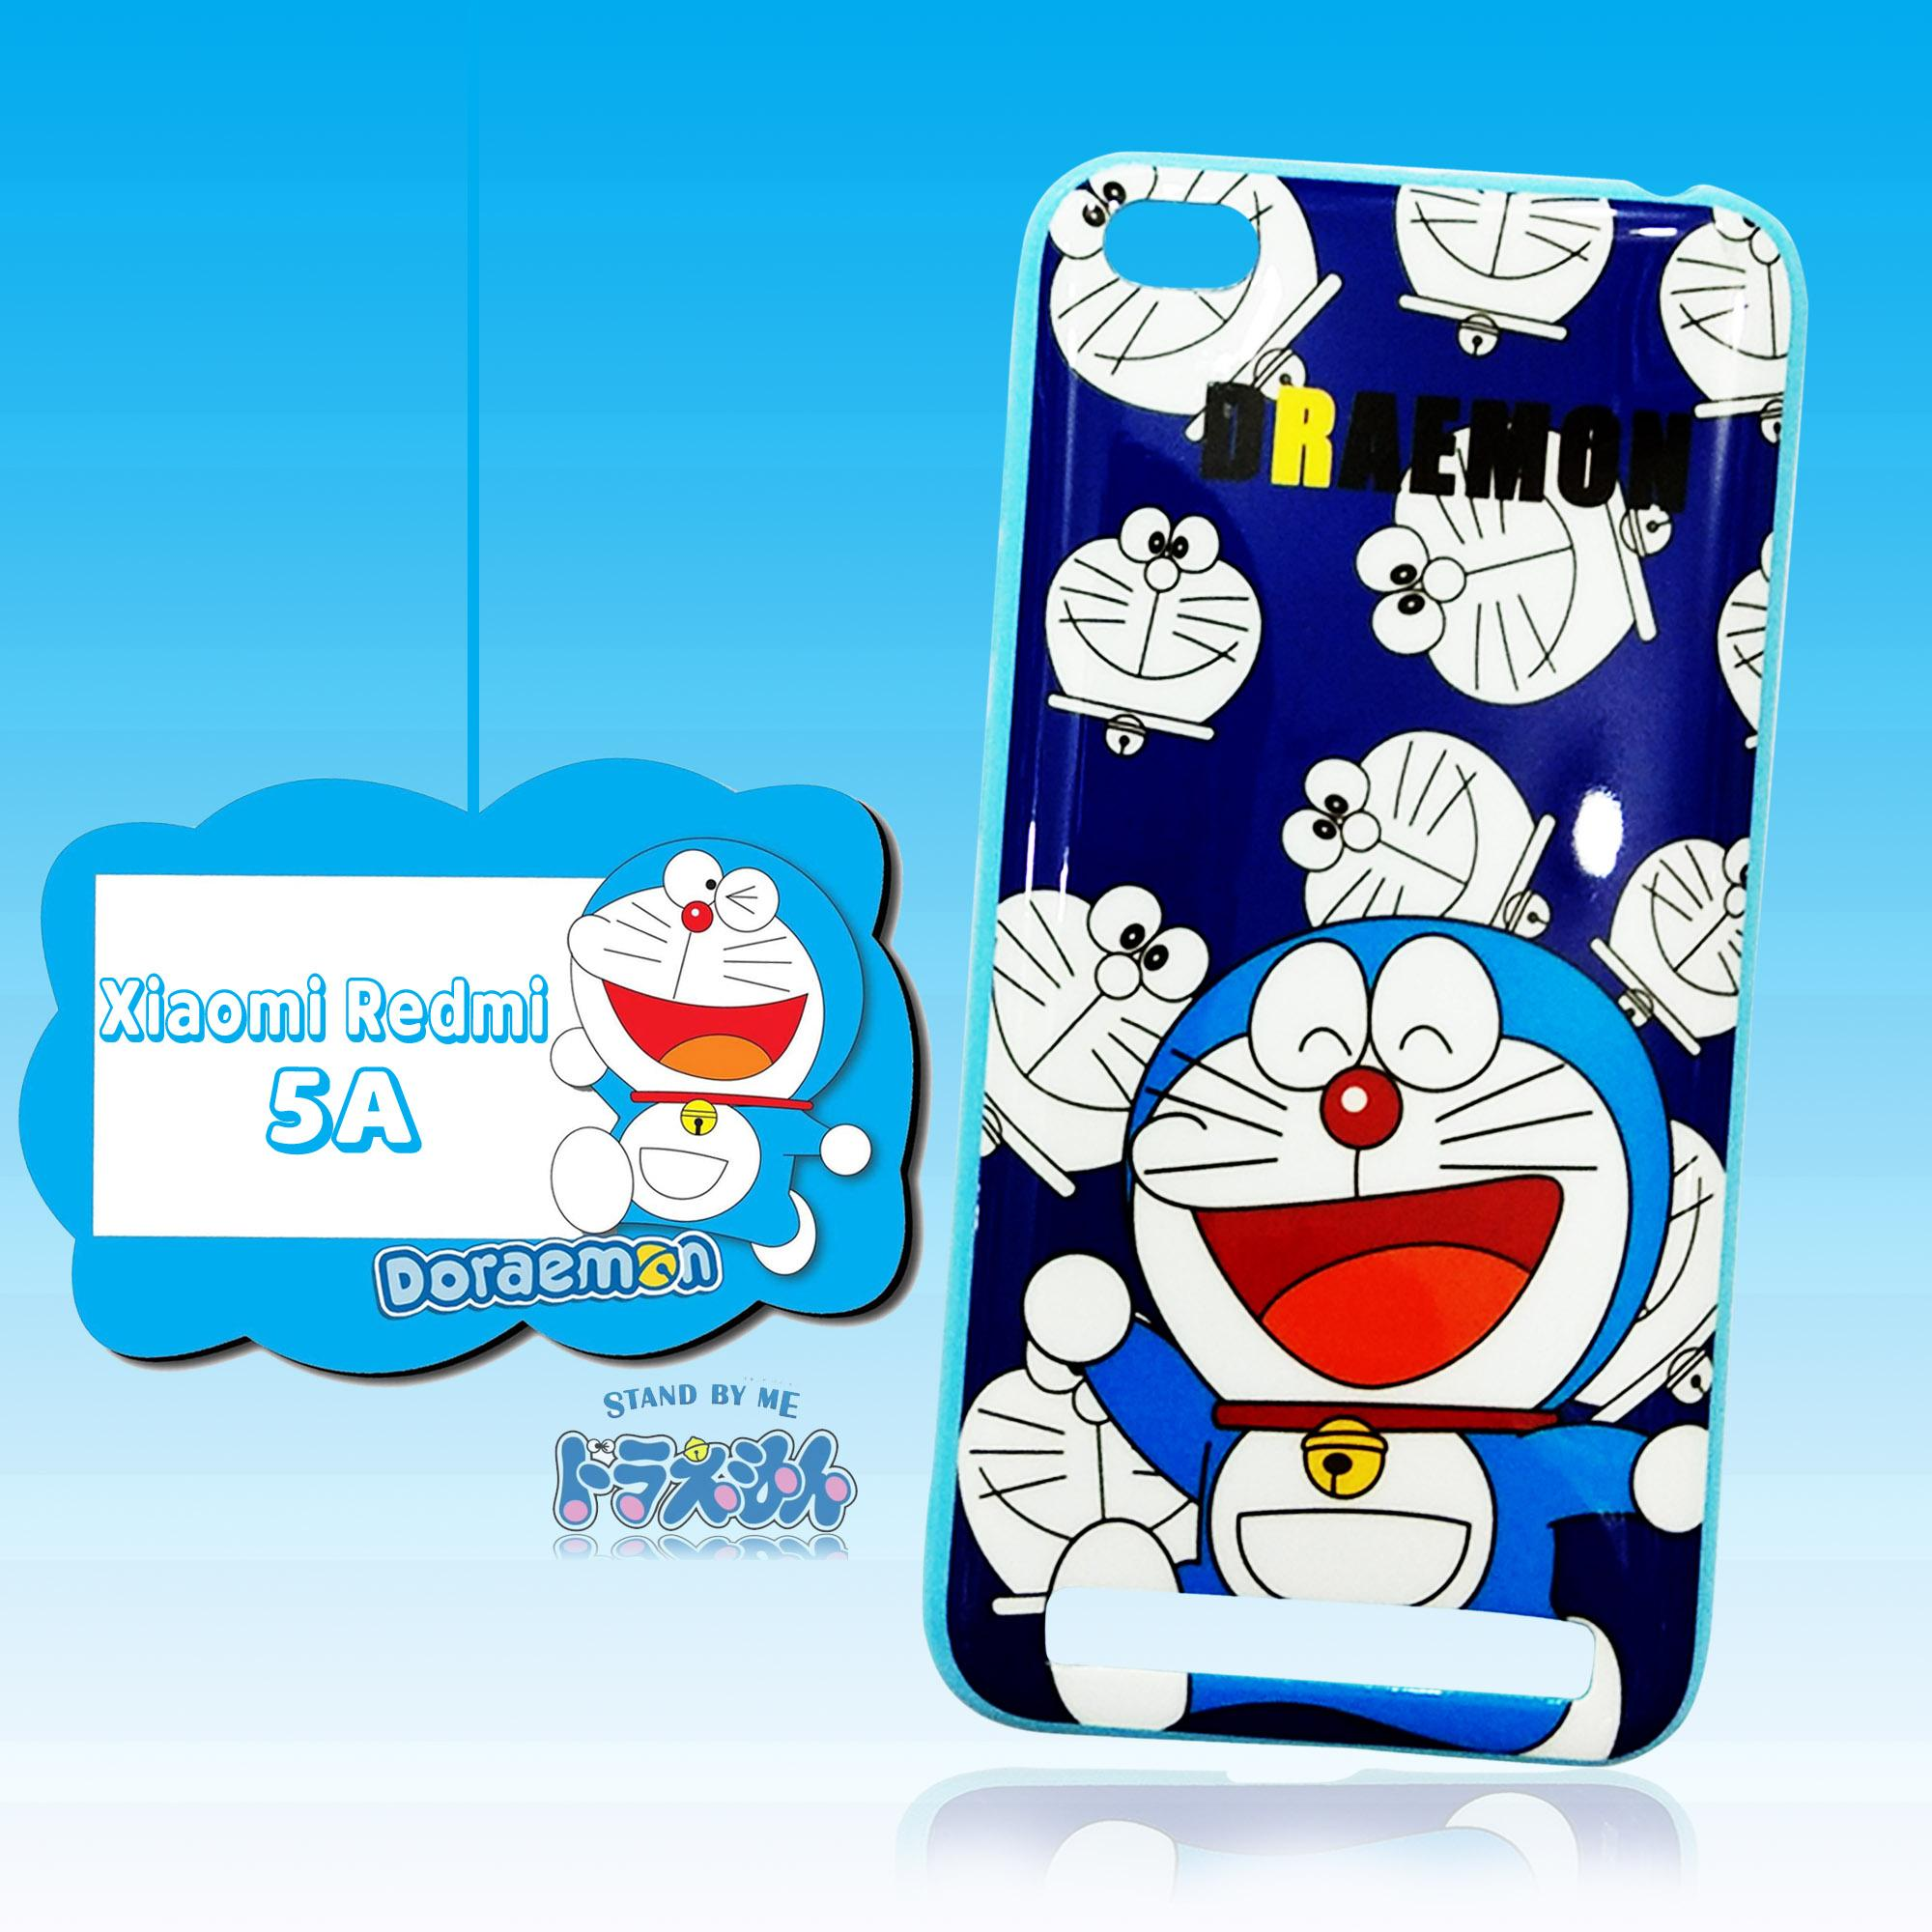 Marintri Case Xiaomi Redmi 5A - New Doraemon Happy Everyday